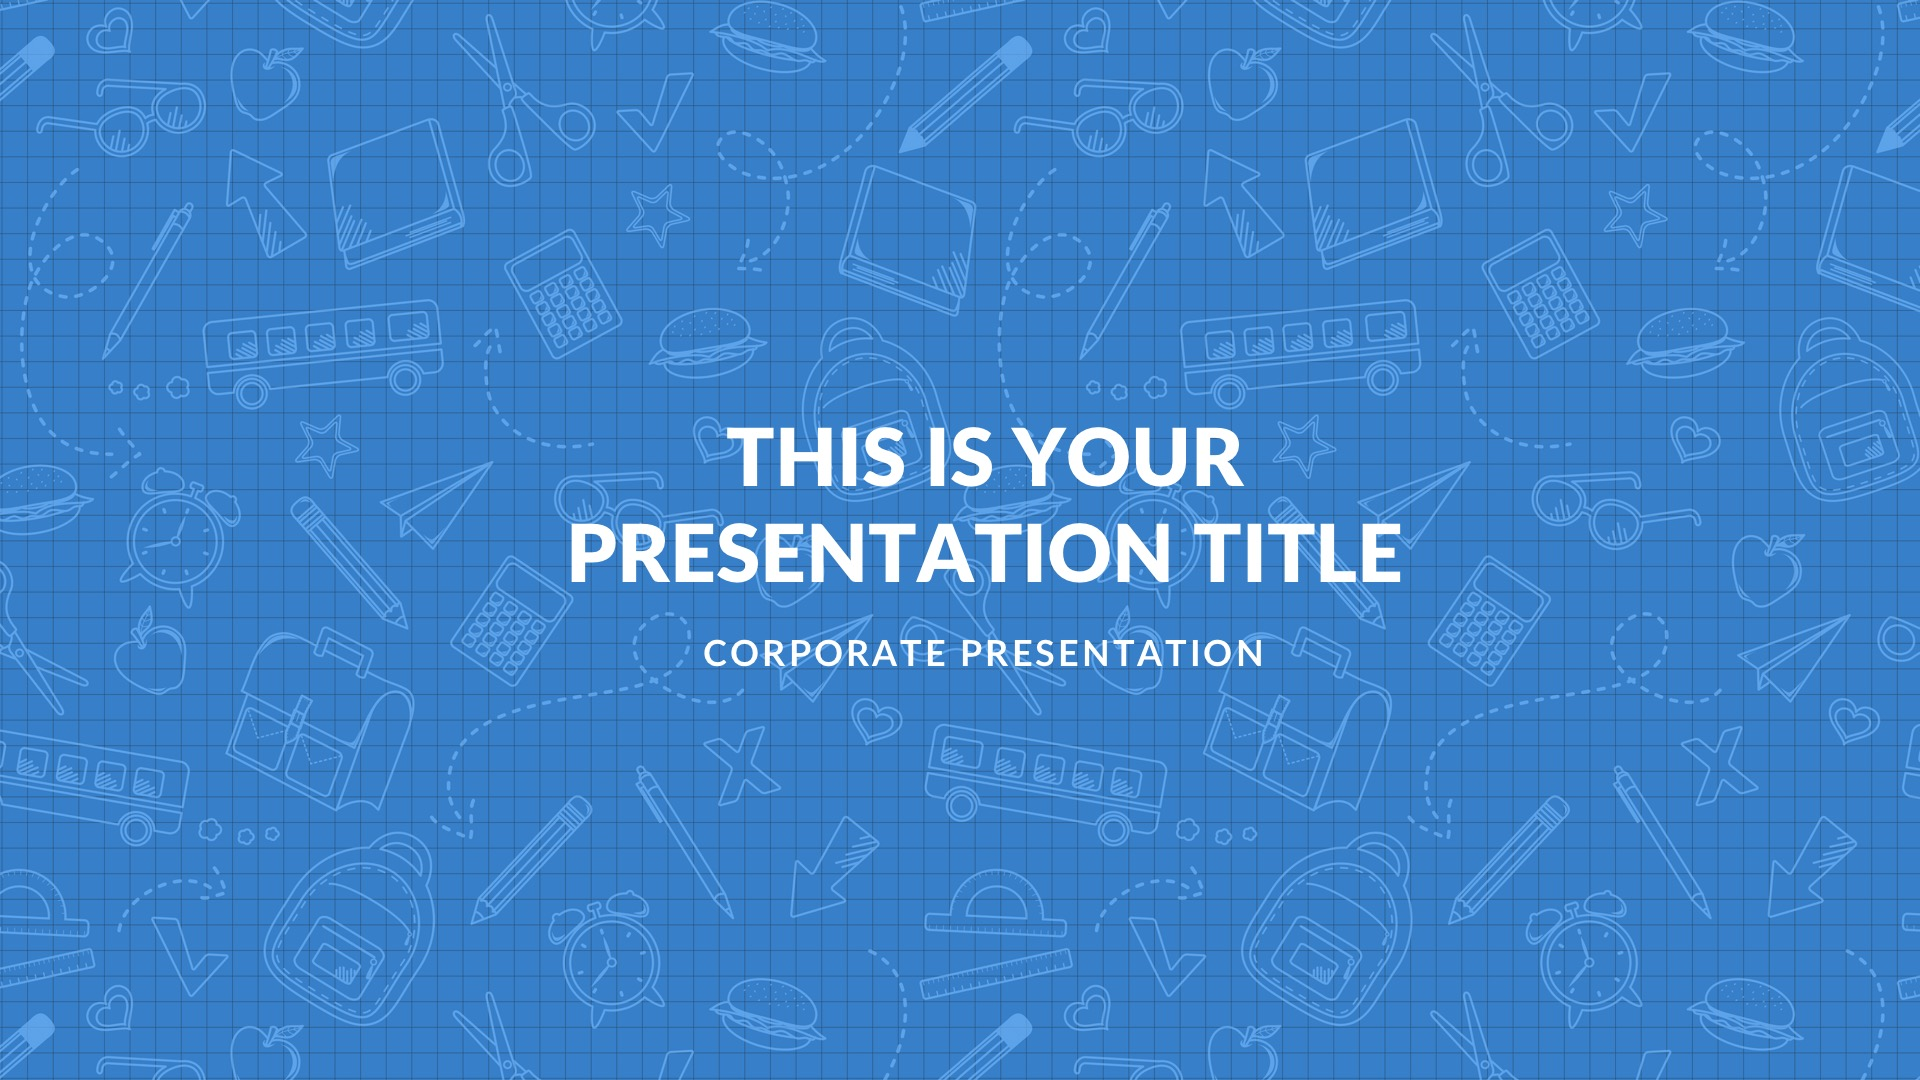 Blue Free PowerPoint Template, Google Slides, Keynote